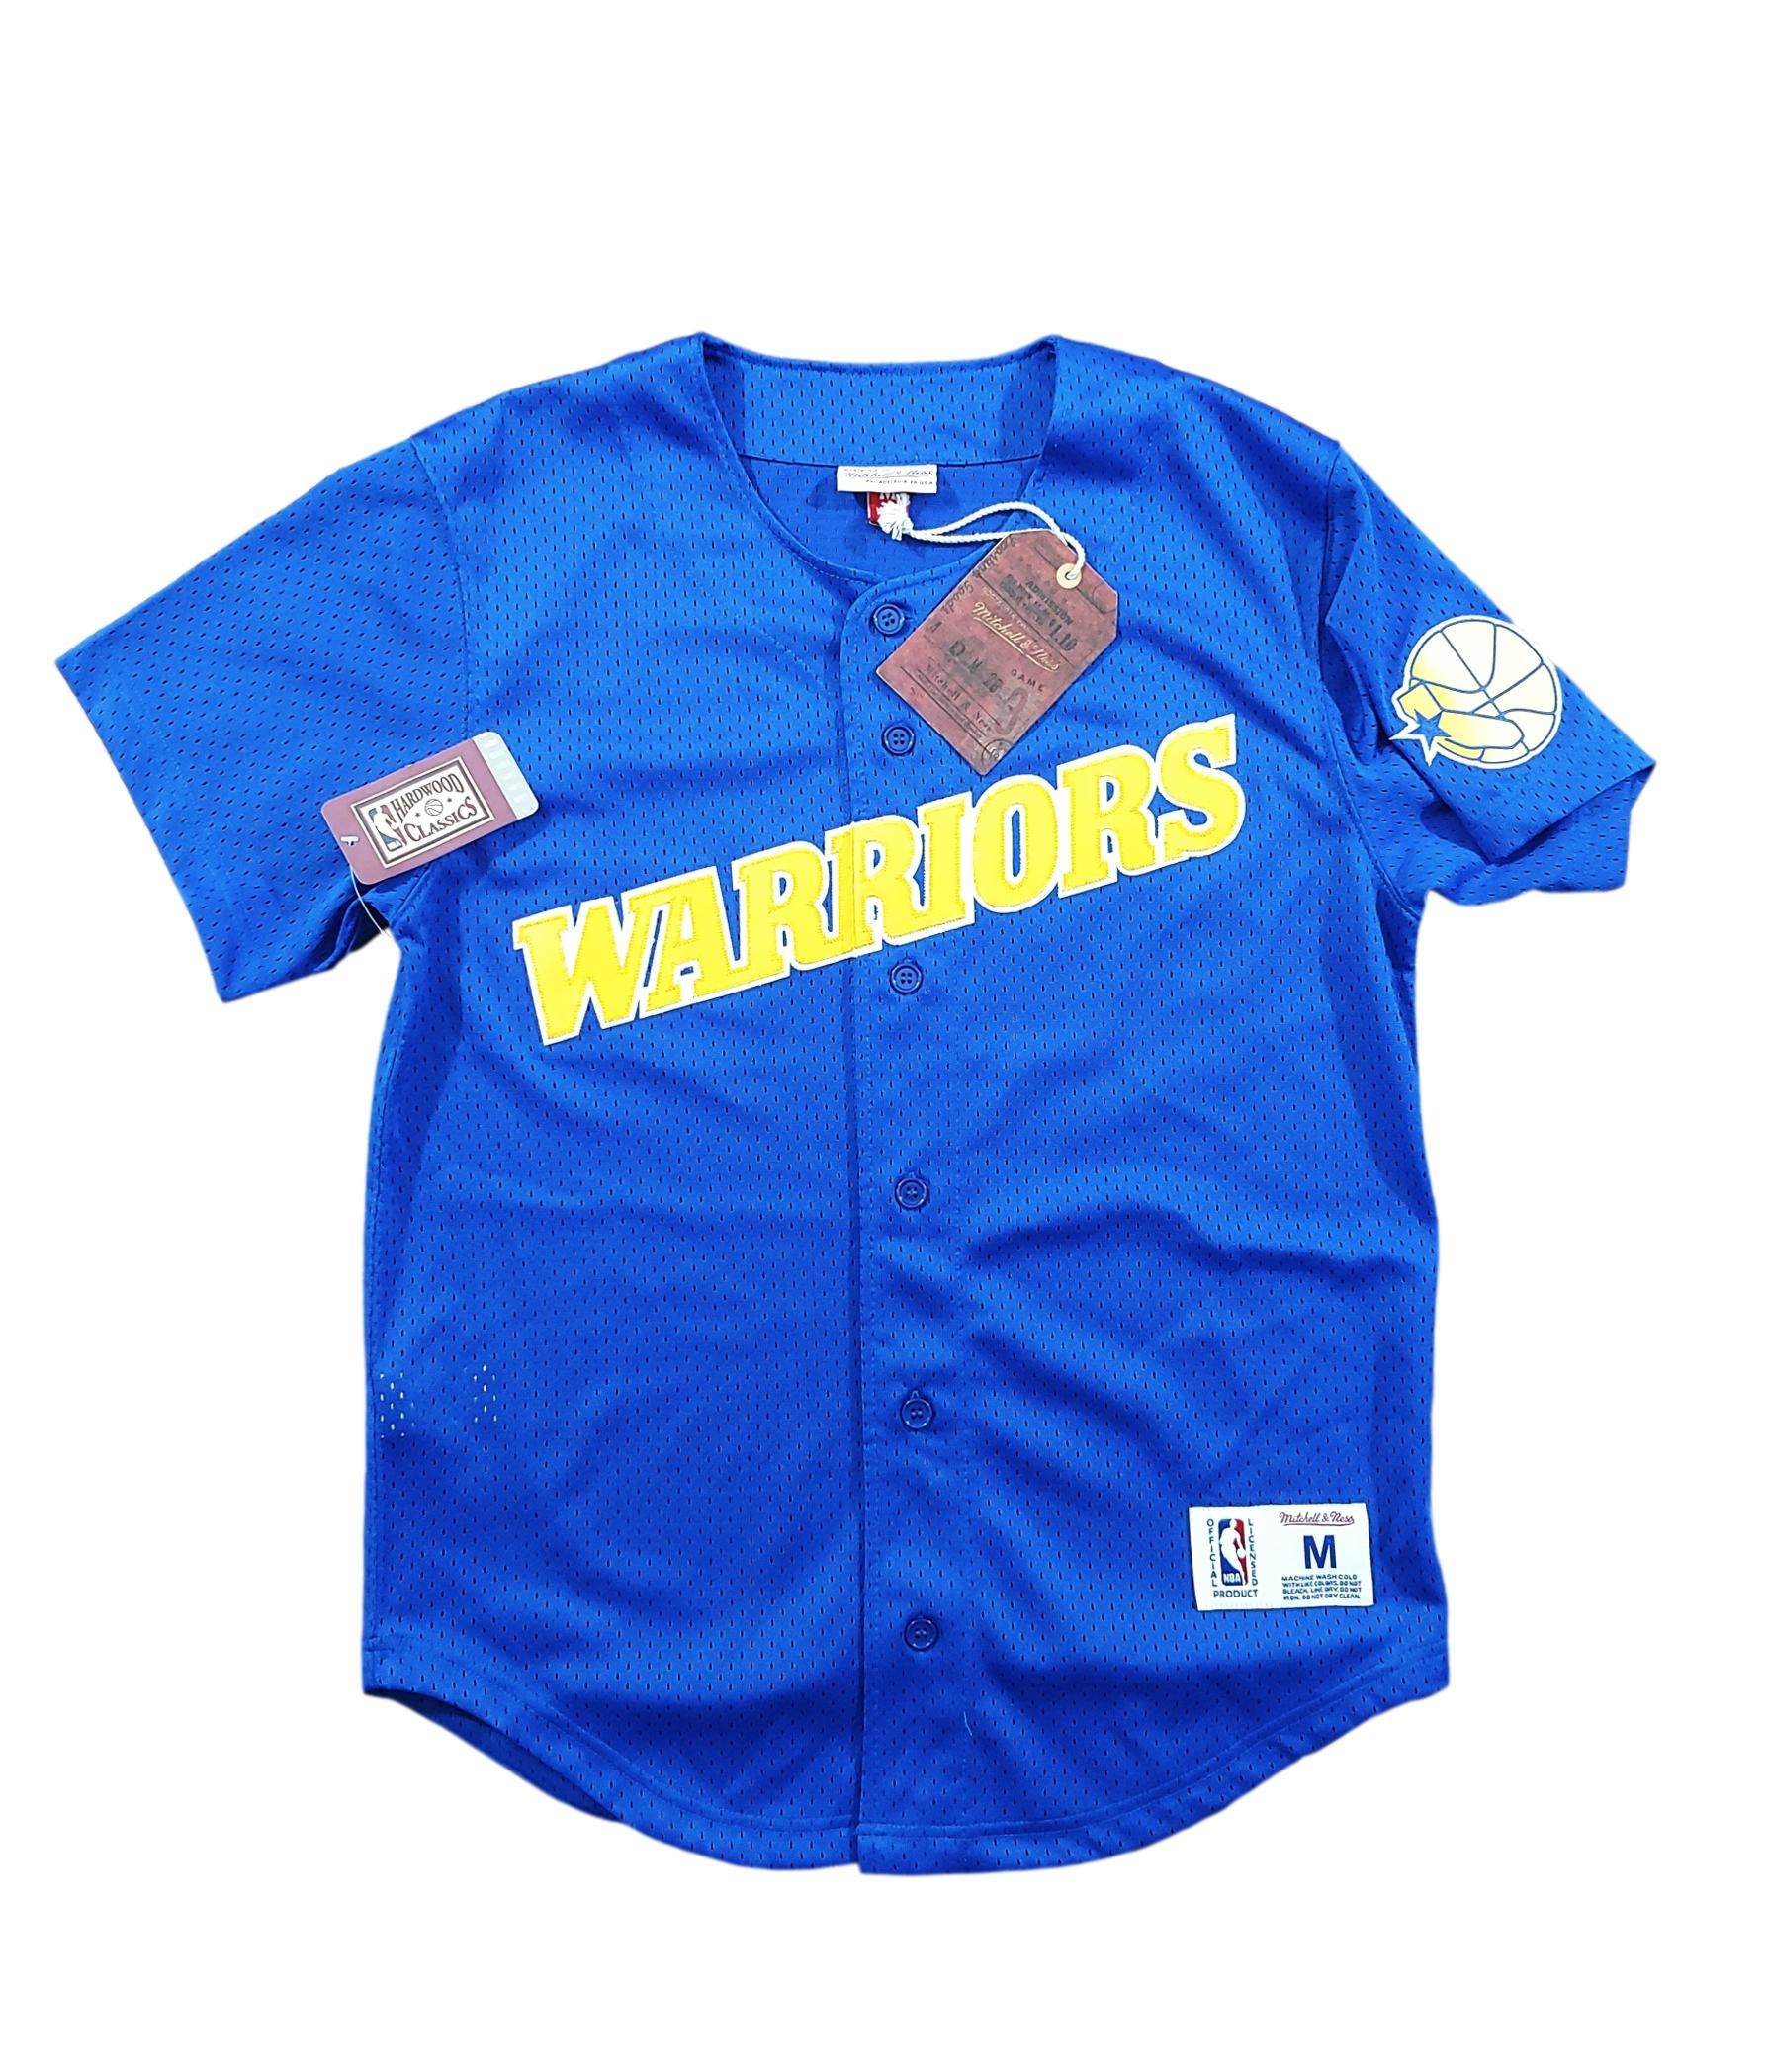 Golden State Warriors Baseball Jersey Mitchell & Ness Sz M